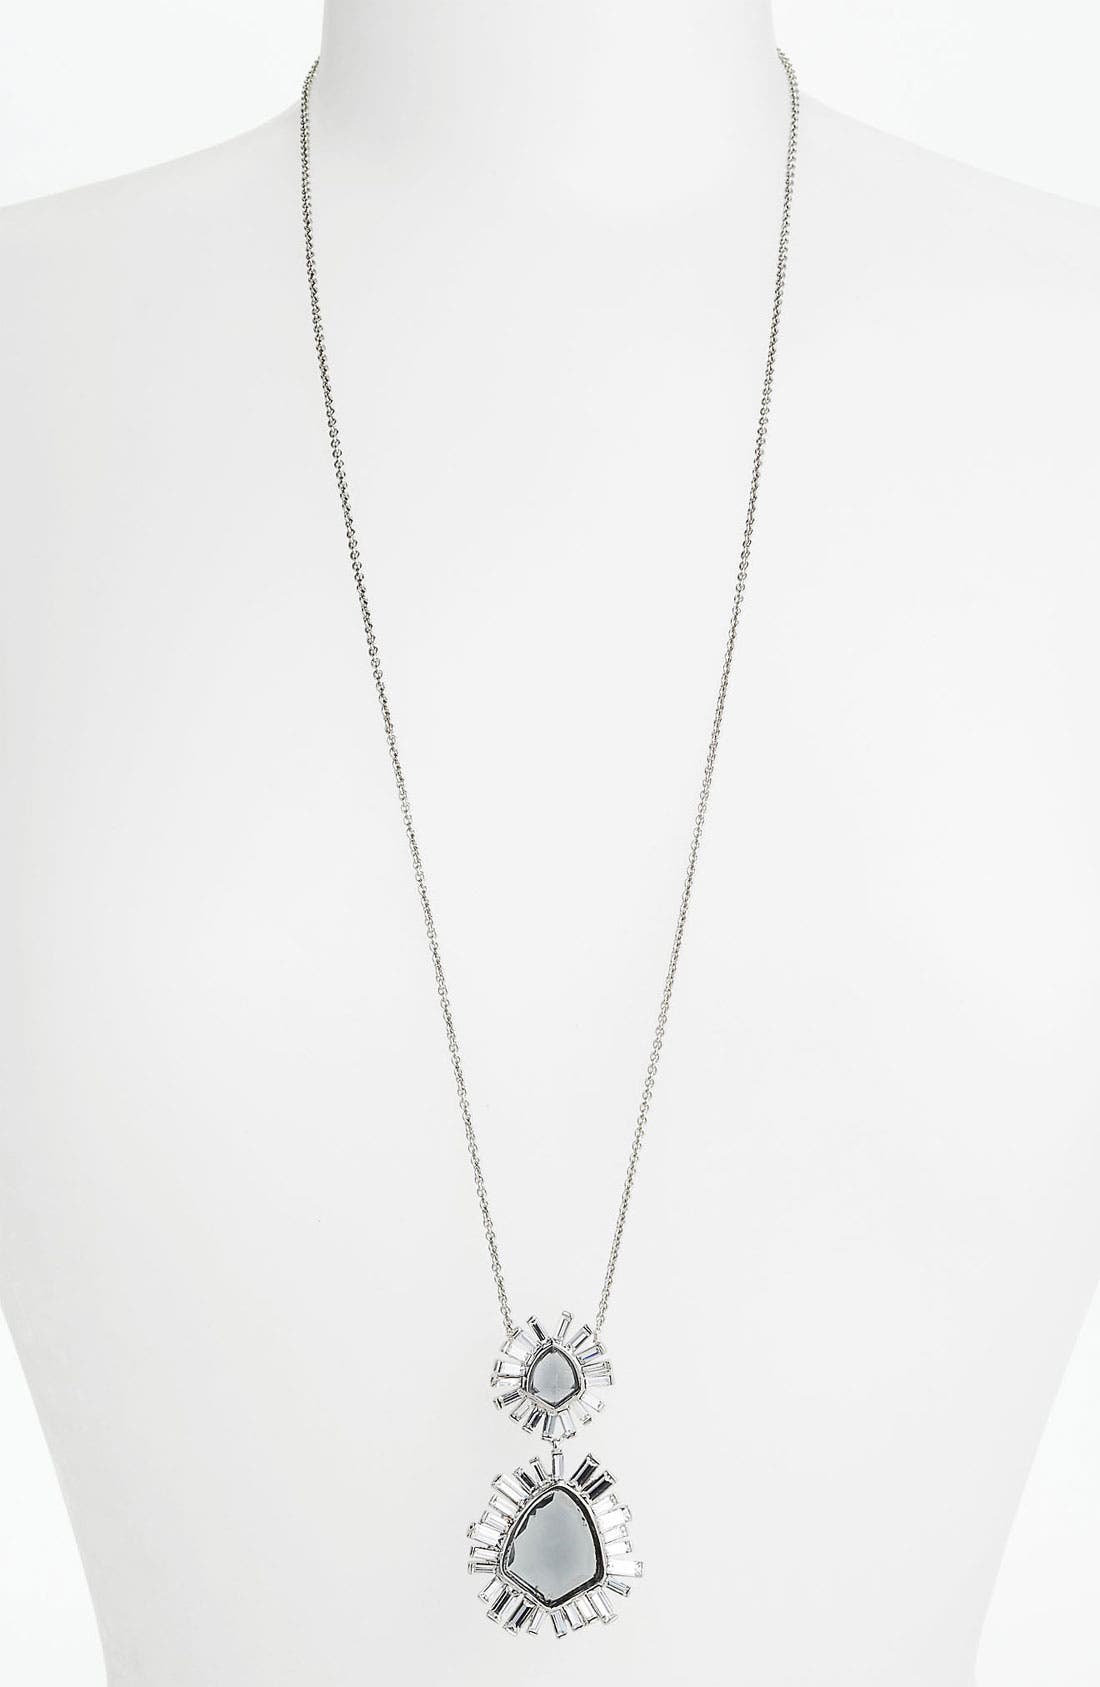 Main Image - Alexis Bittar 'Miss Havisham - Bel Air' Long Starburst Pendant Necklace